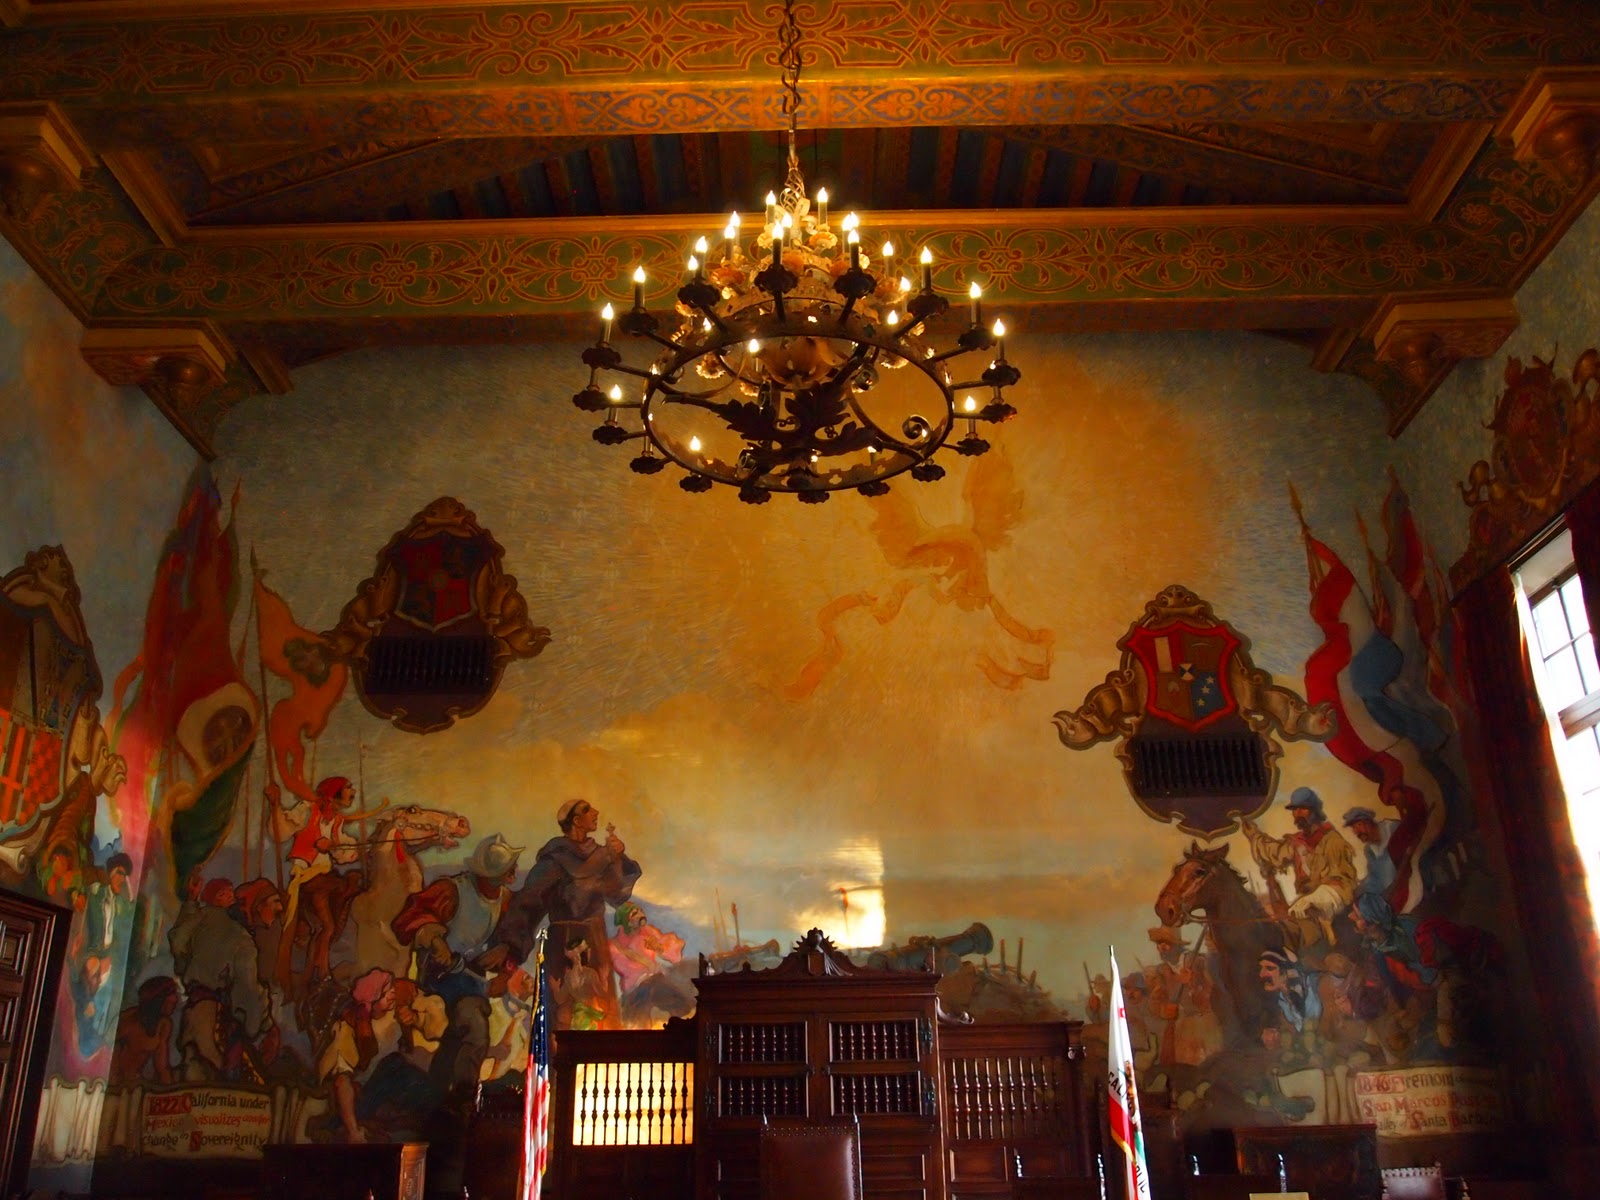 Aim high willis aim high santa barbara county courthouse for Mural room santa barbara courthouse